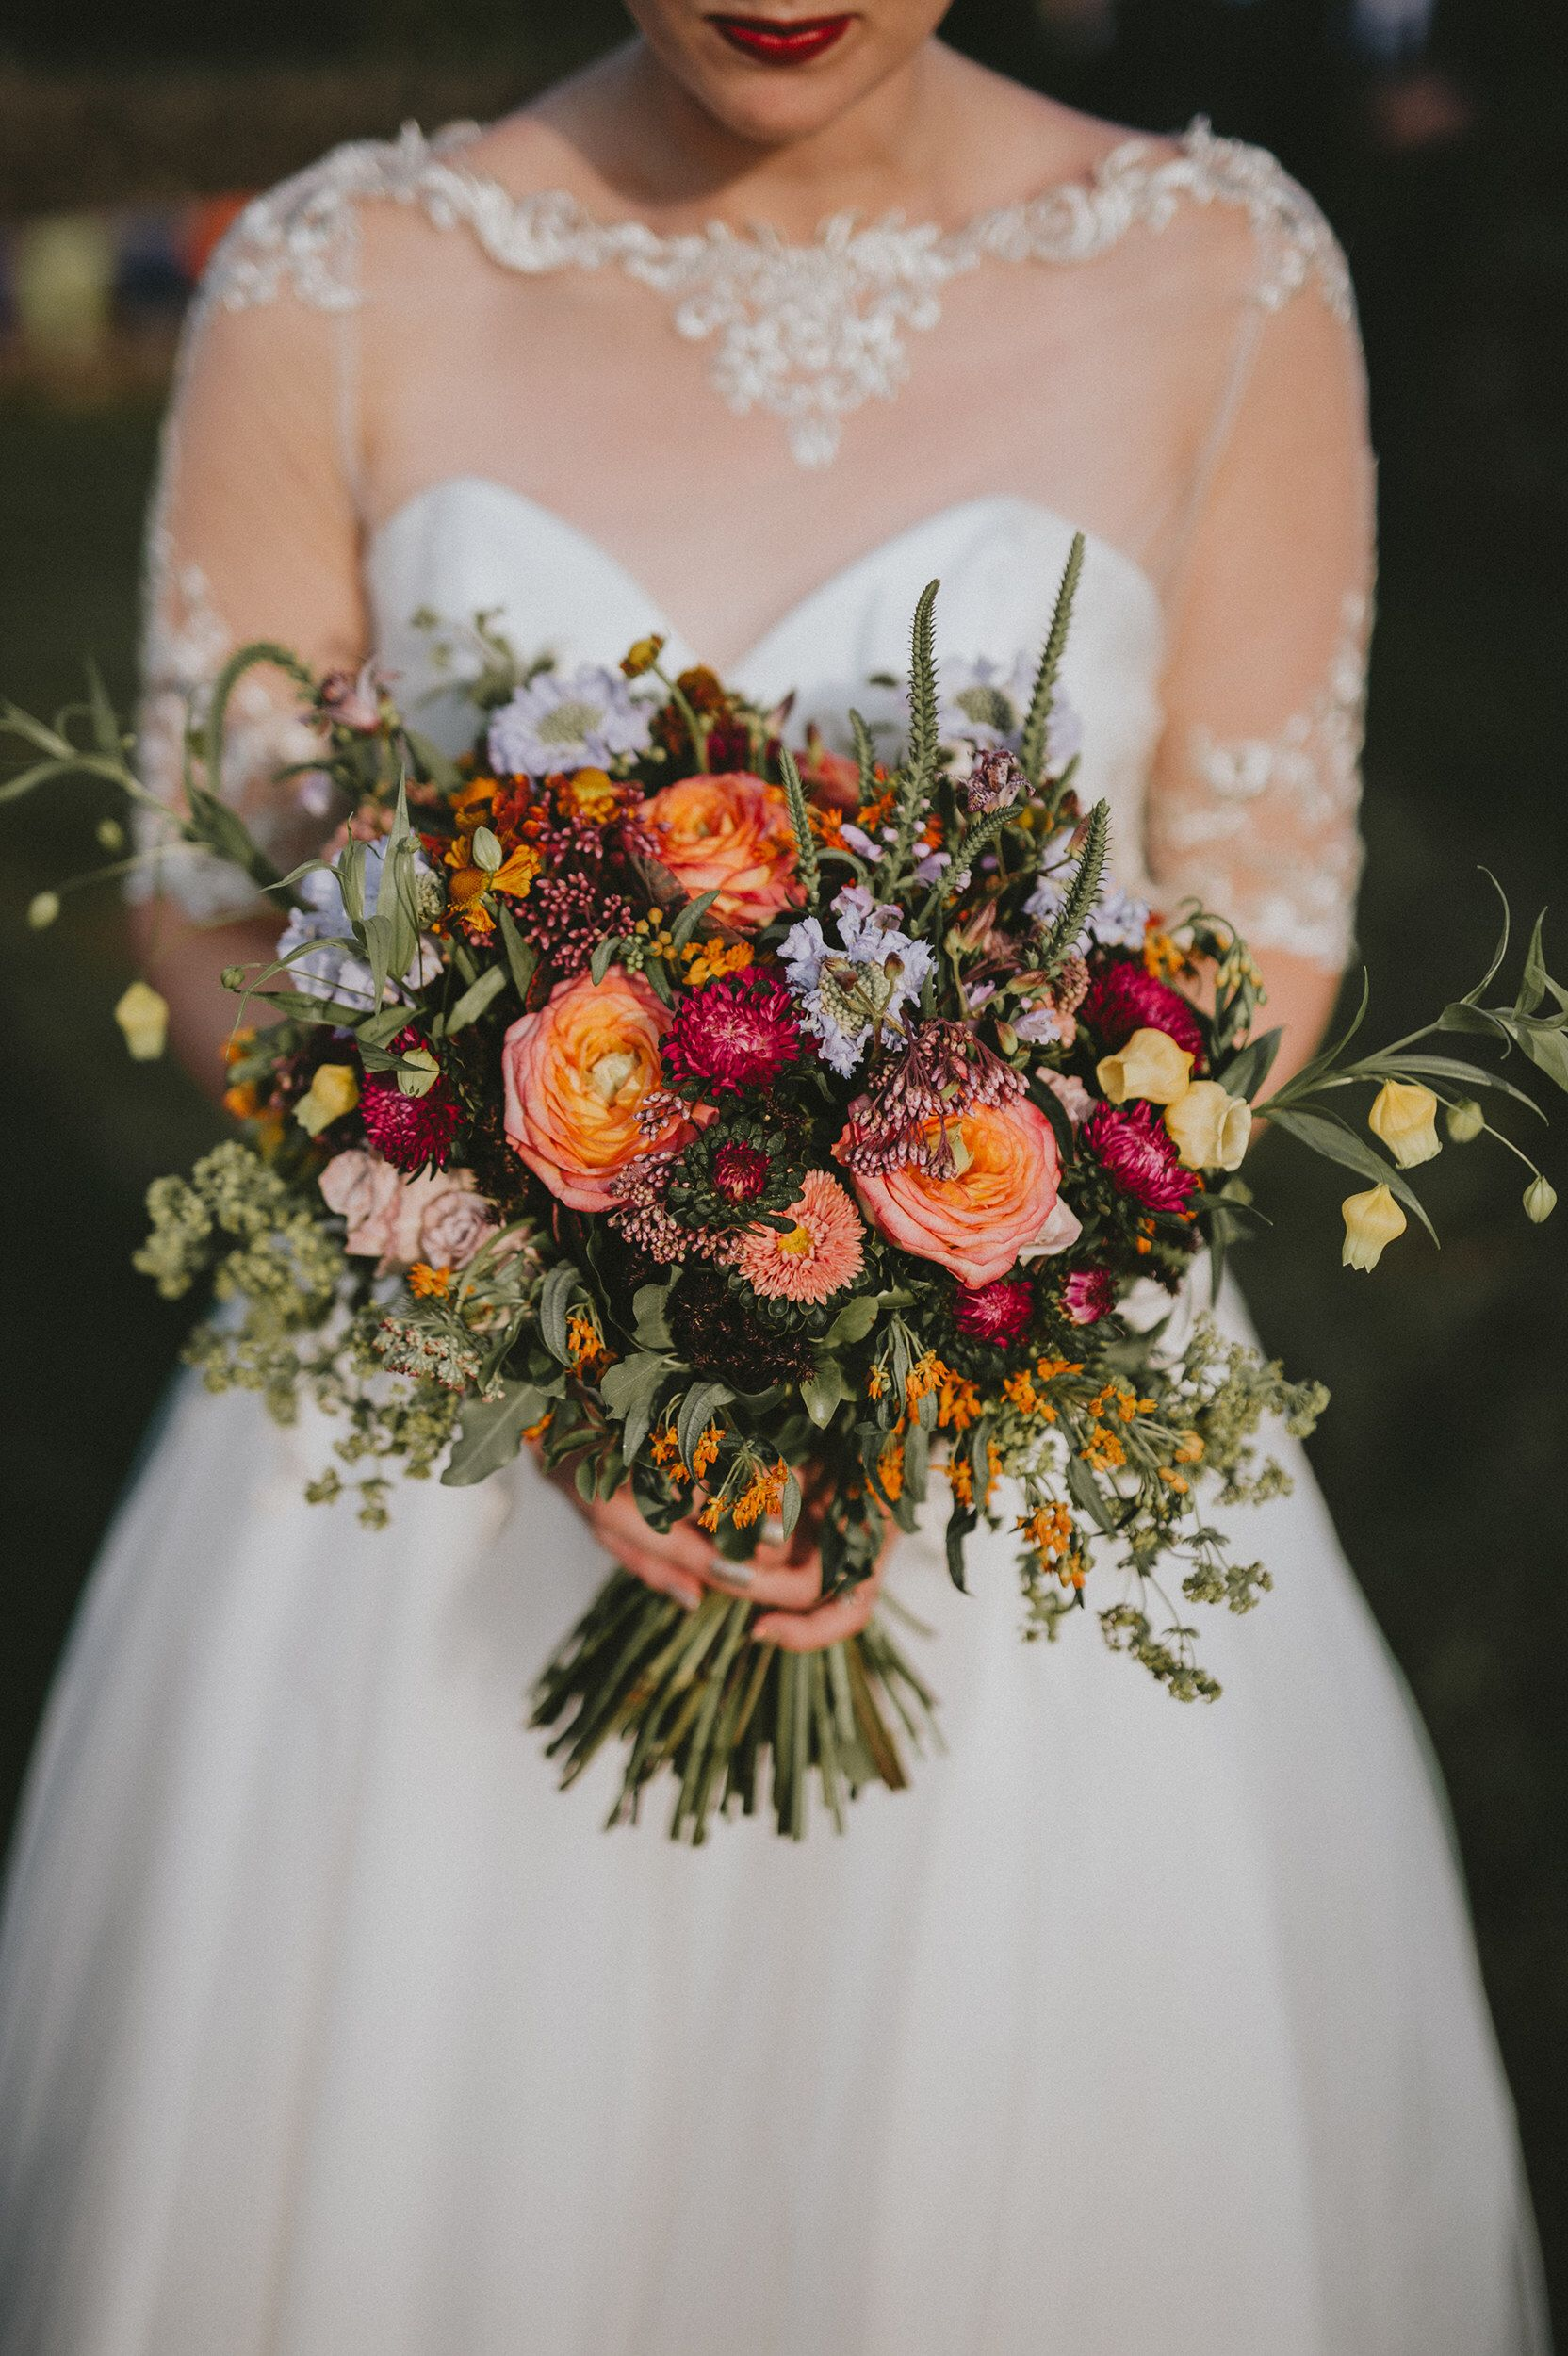 Roses and wild flowers for an end of summer/early autumn